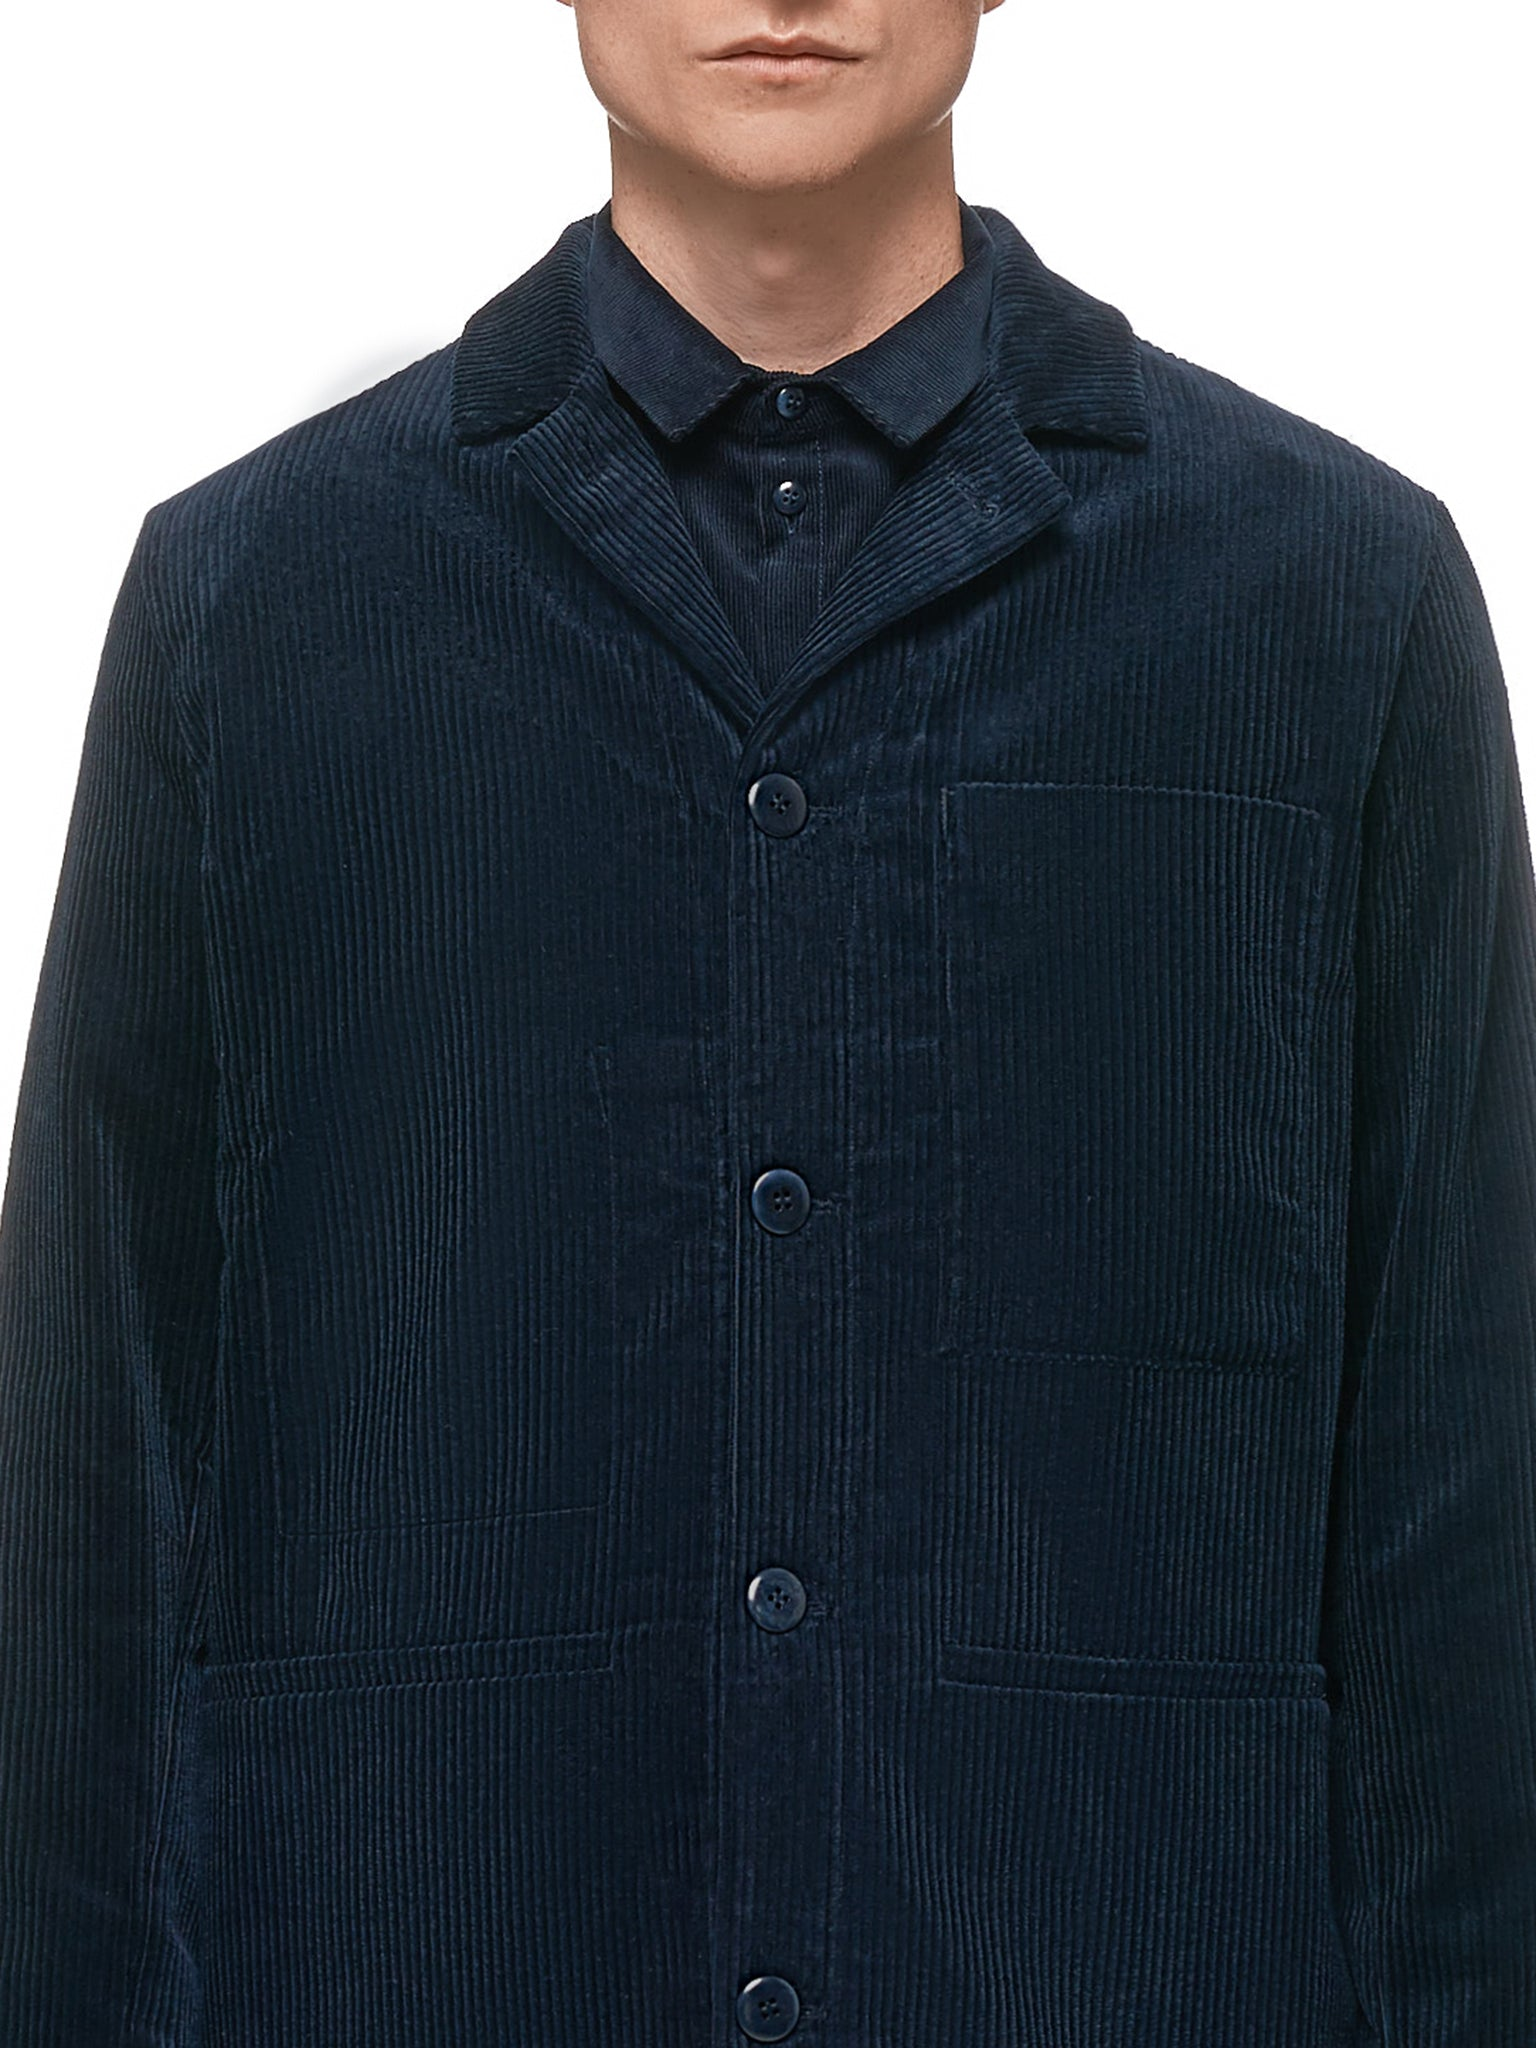 The Carpenter Jacket (THE-CARPENTER-JKT-CORD-INK)